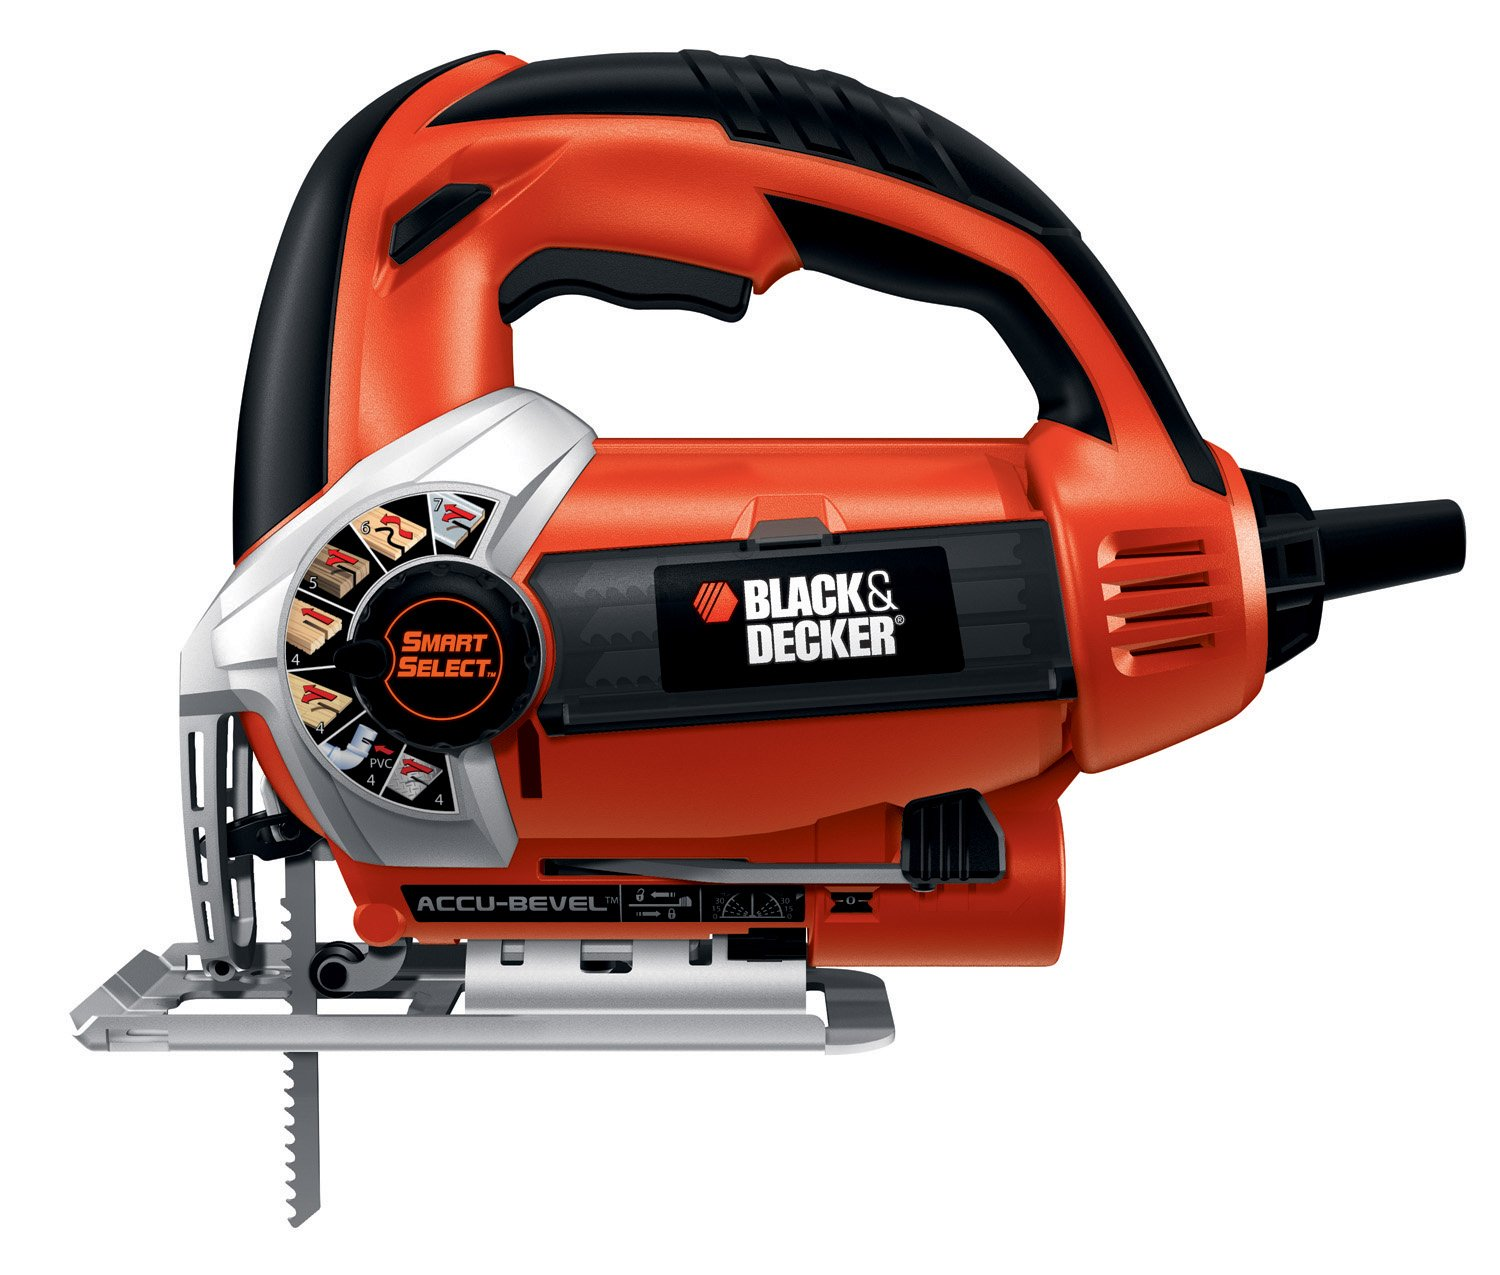 Black Decker Smart Select 5.0A Orbital Jigsaw